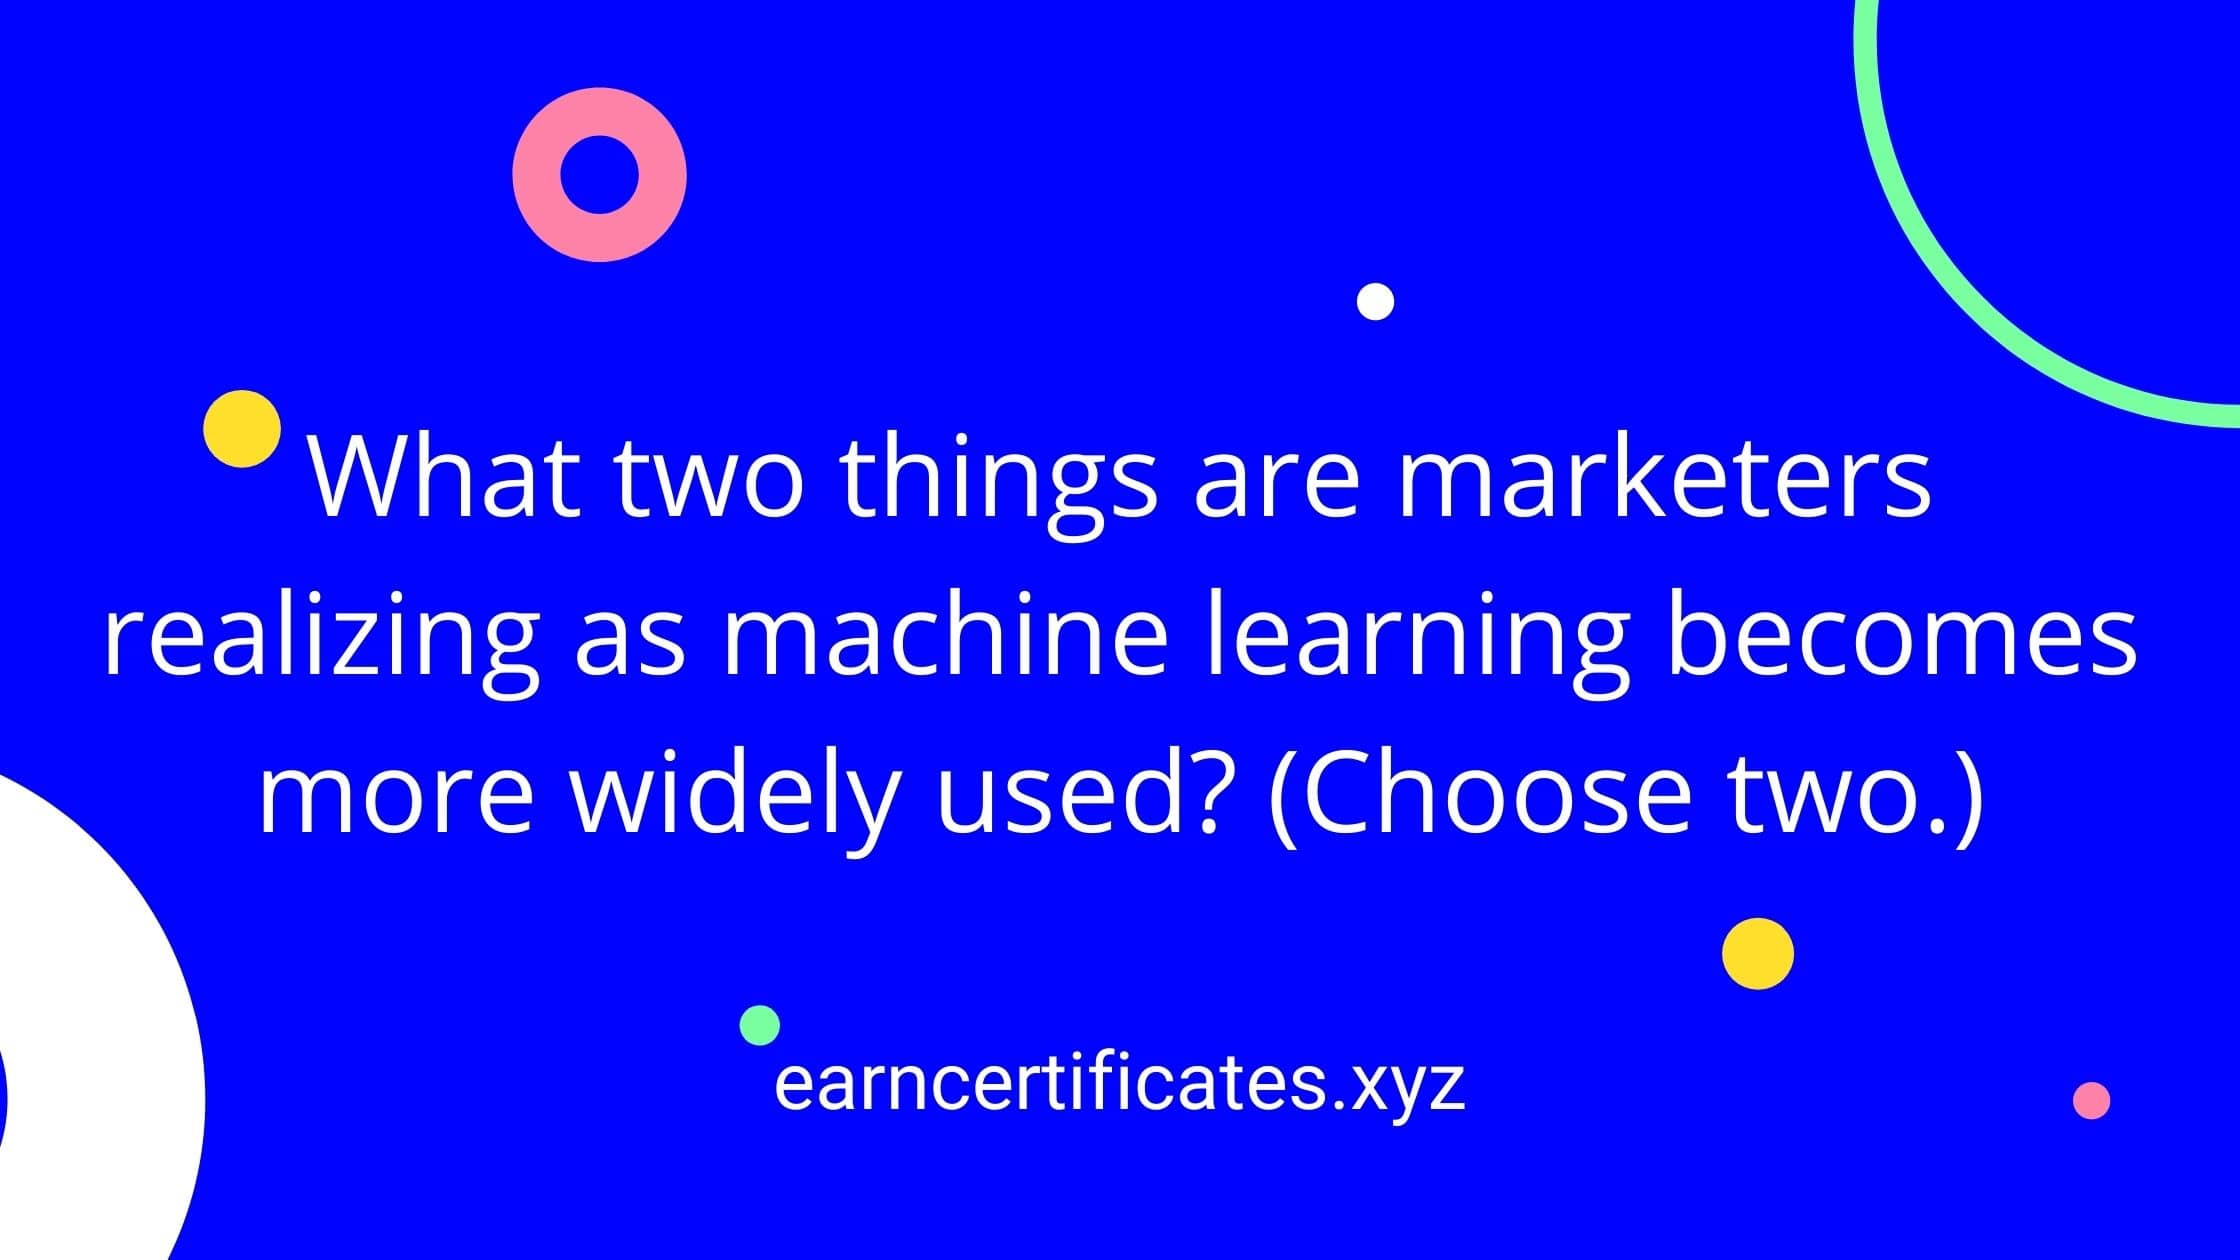 What two things are marketers realizing as machine learning becomes more widely used? (Choose two.)